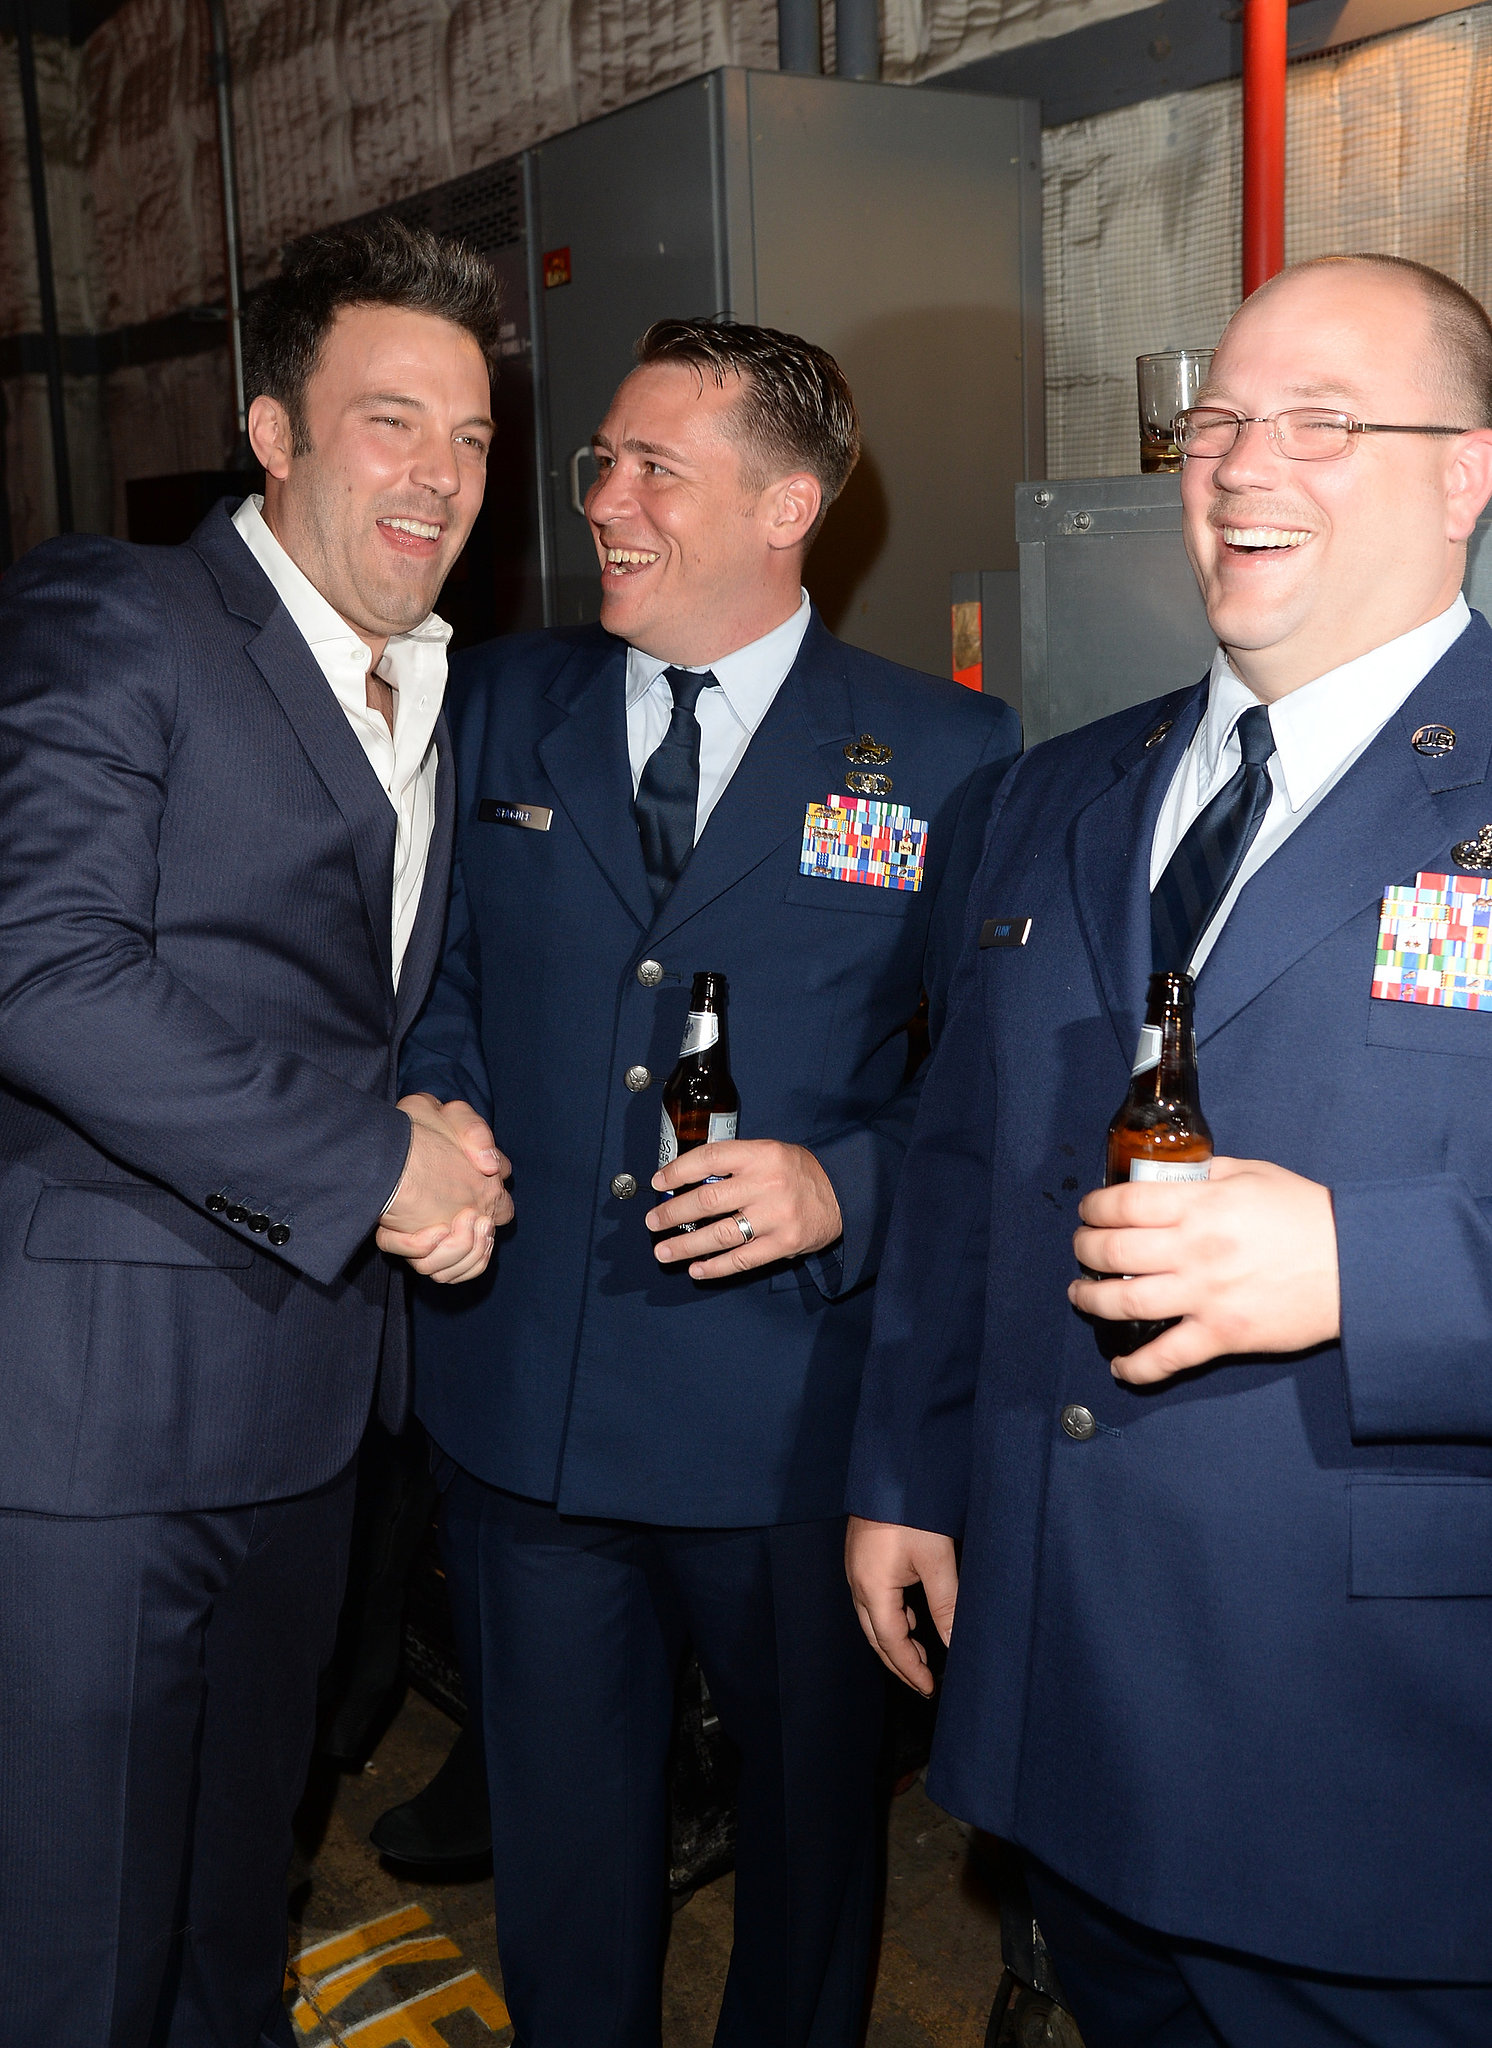 Ben Affleck laughed with servicemen backstage at the Guys Choice Awards.